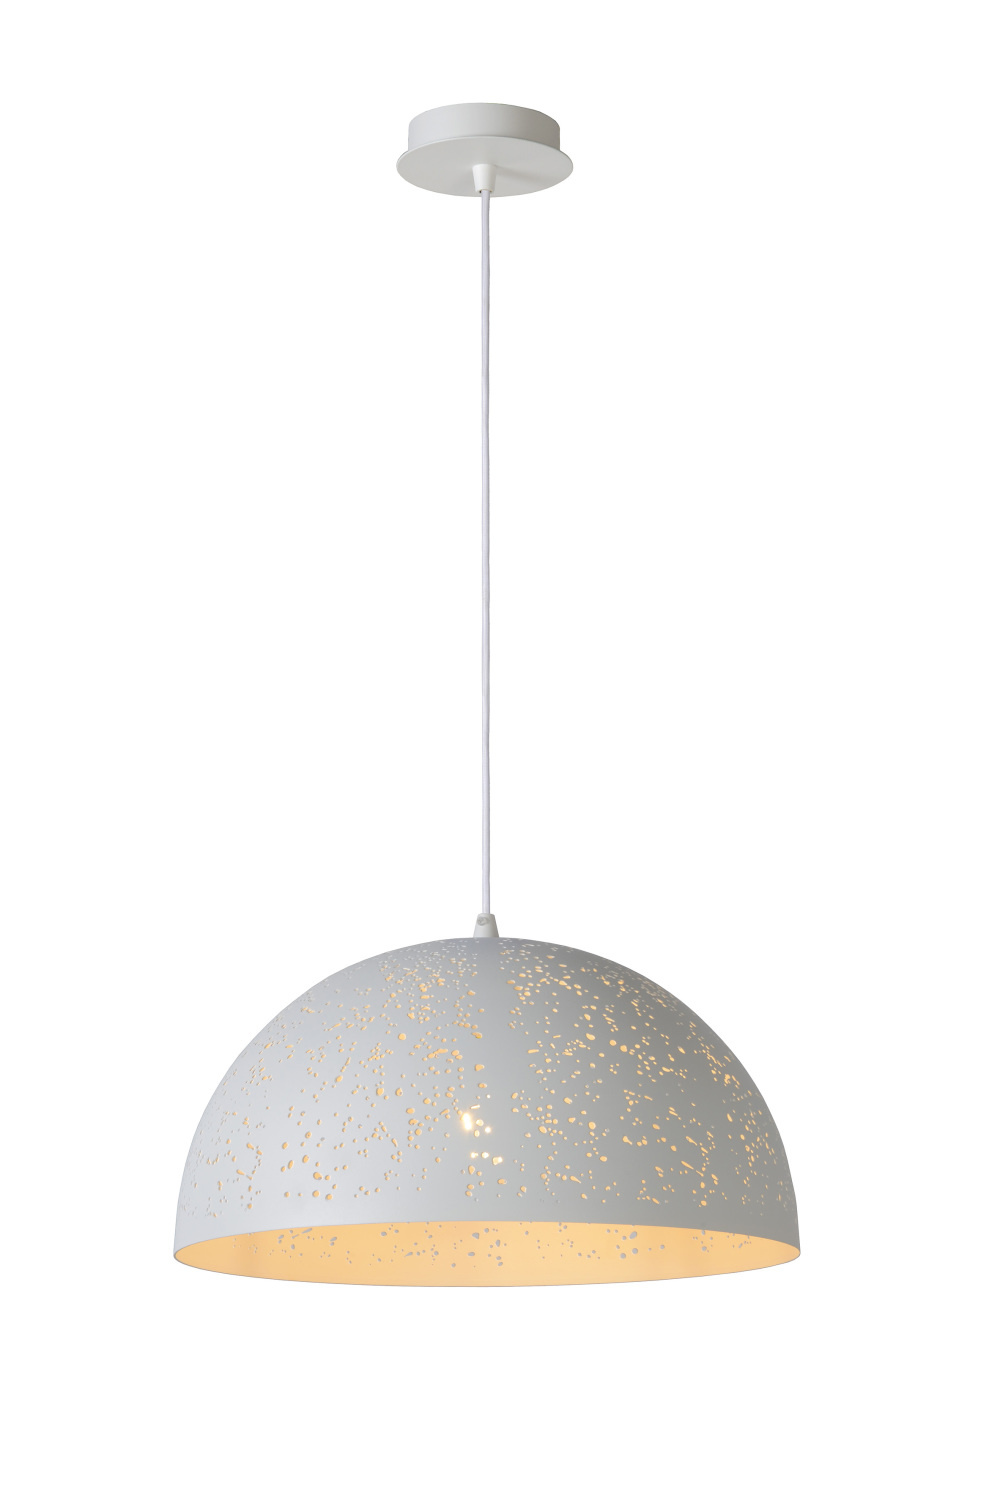 Lucide Eternal Hanglamp (Rond)  40 cm - Wit